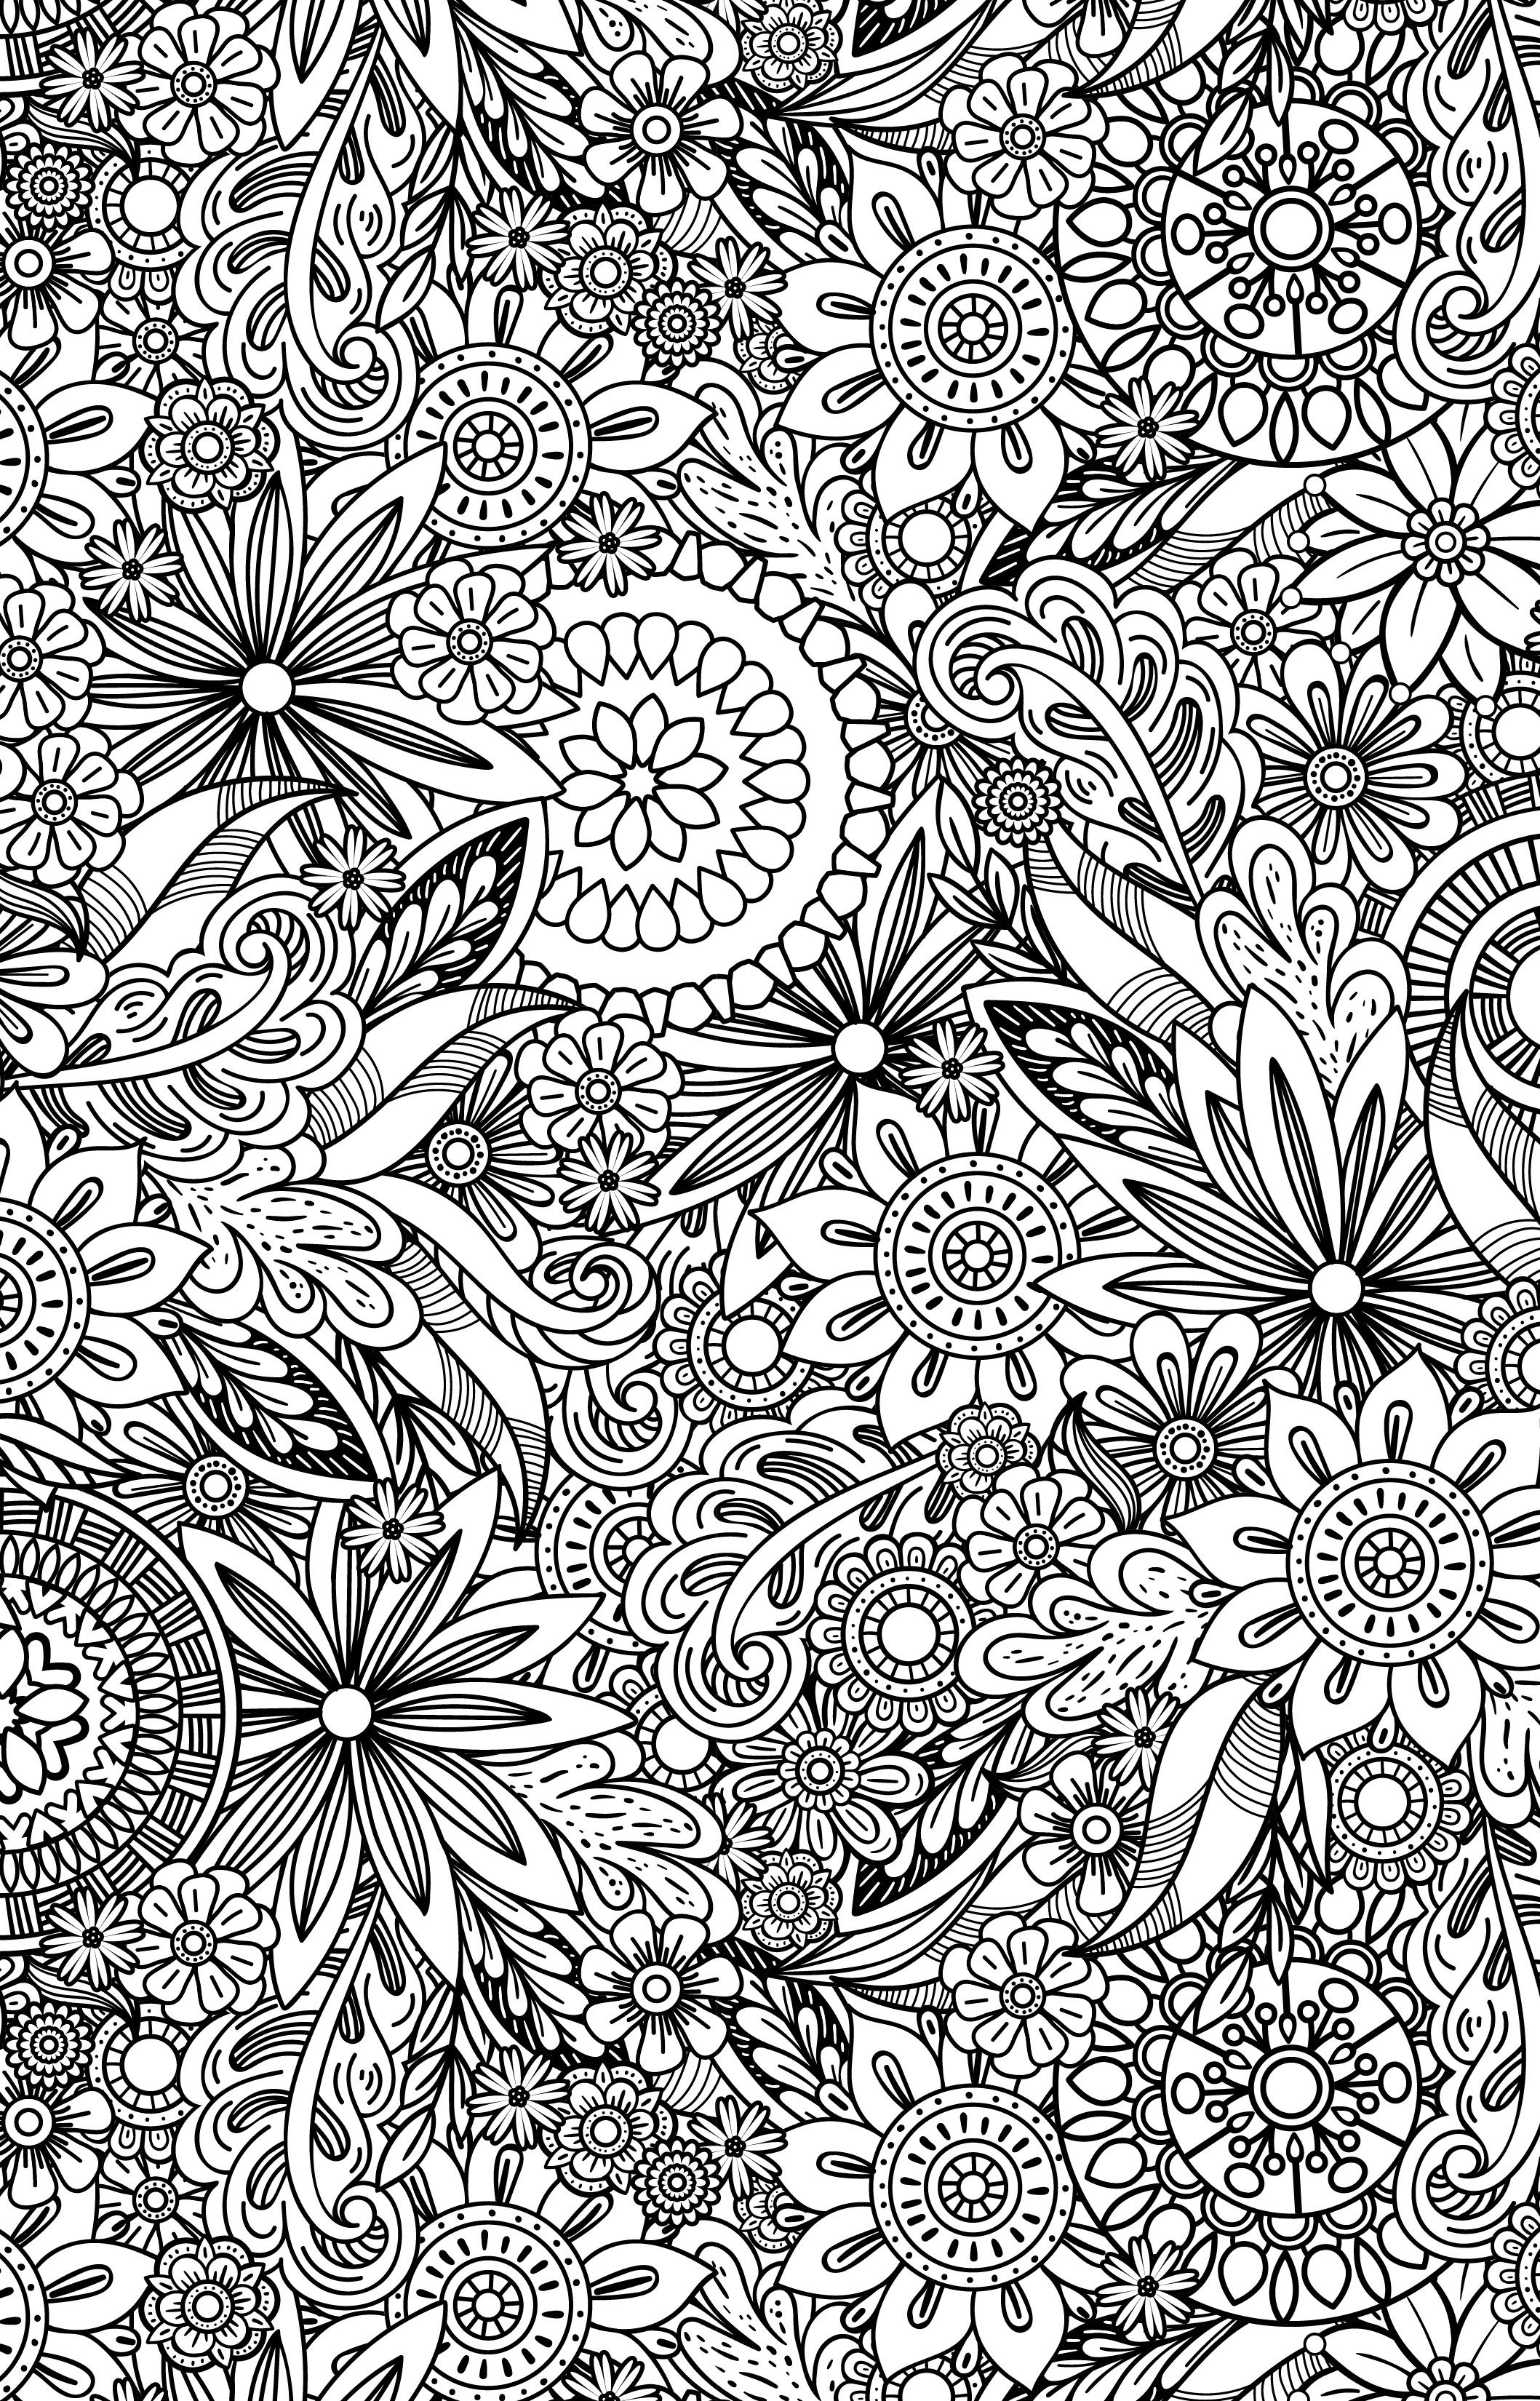 Floral Coloring Pages for Adults Instant Download PDF Printable adult coloring page